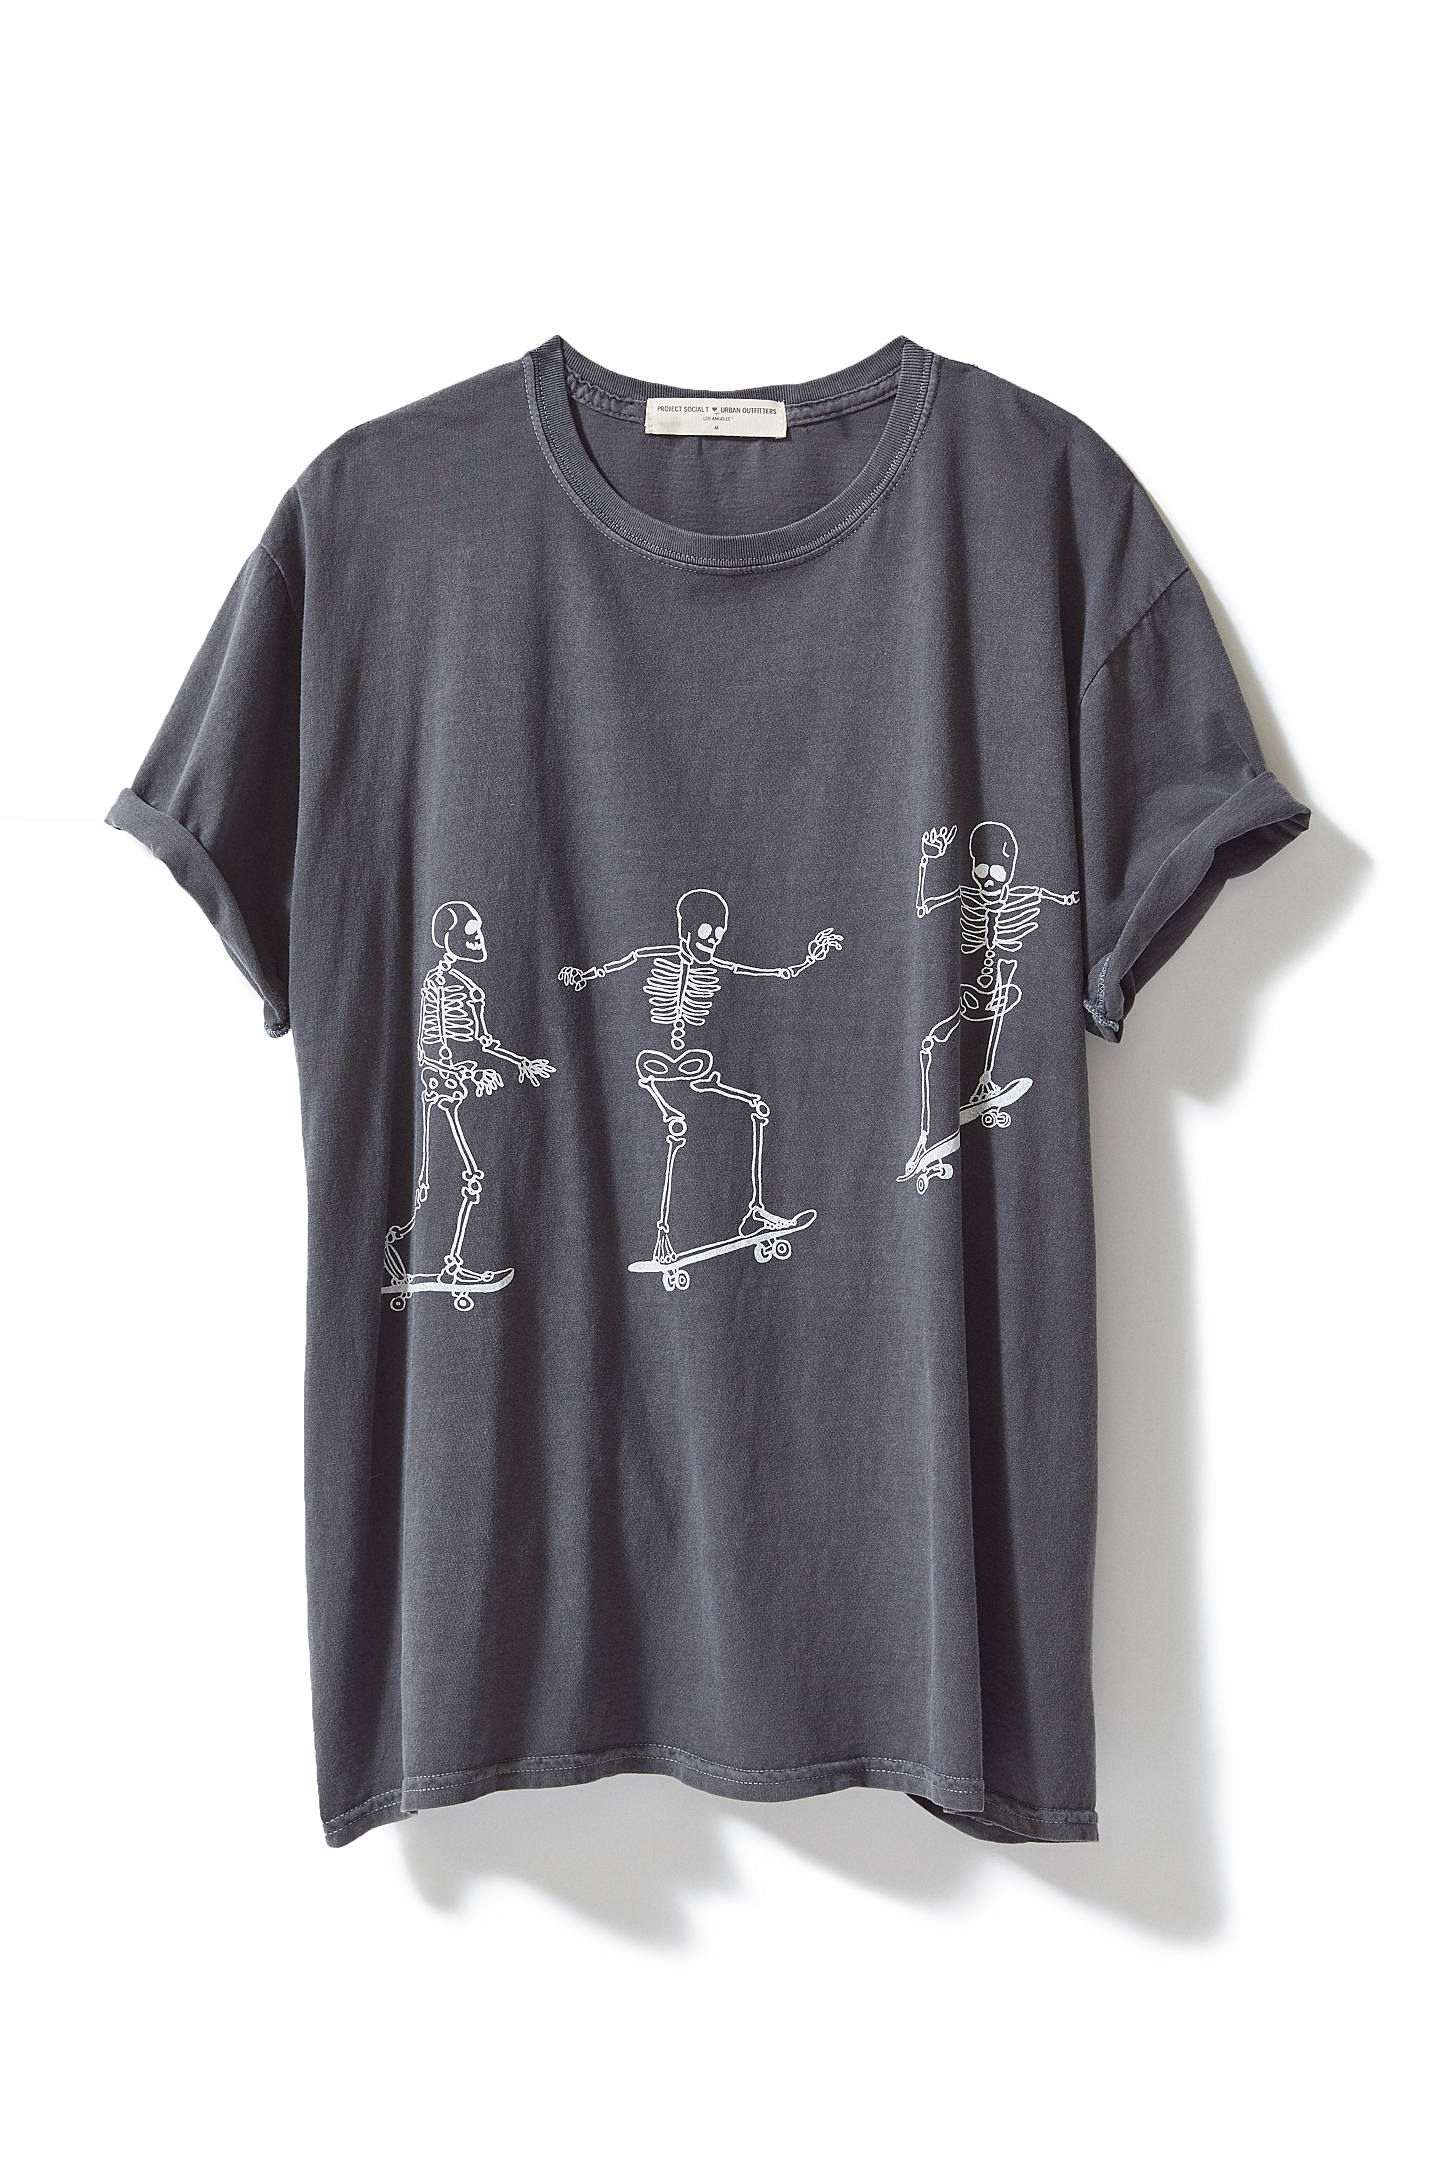 Project Social T Skateboard Skeletons Tee Skeleton Tees Project Social T Tshirt Outfits